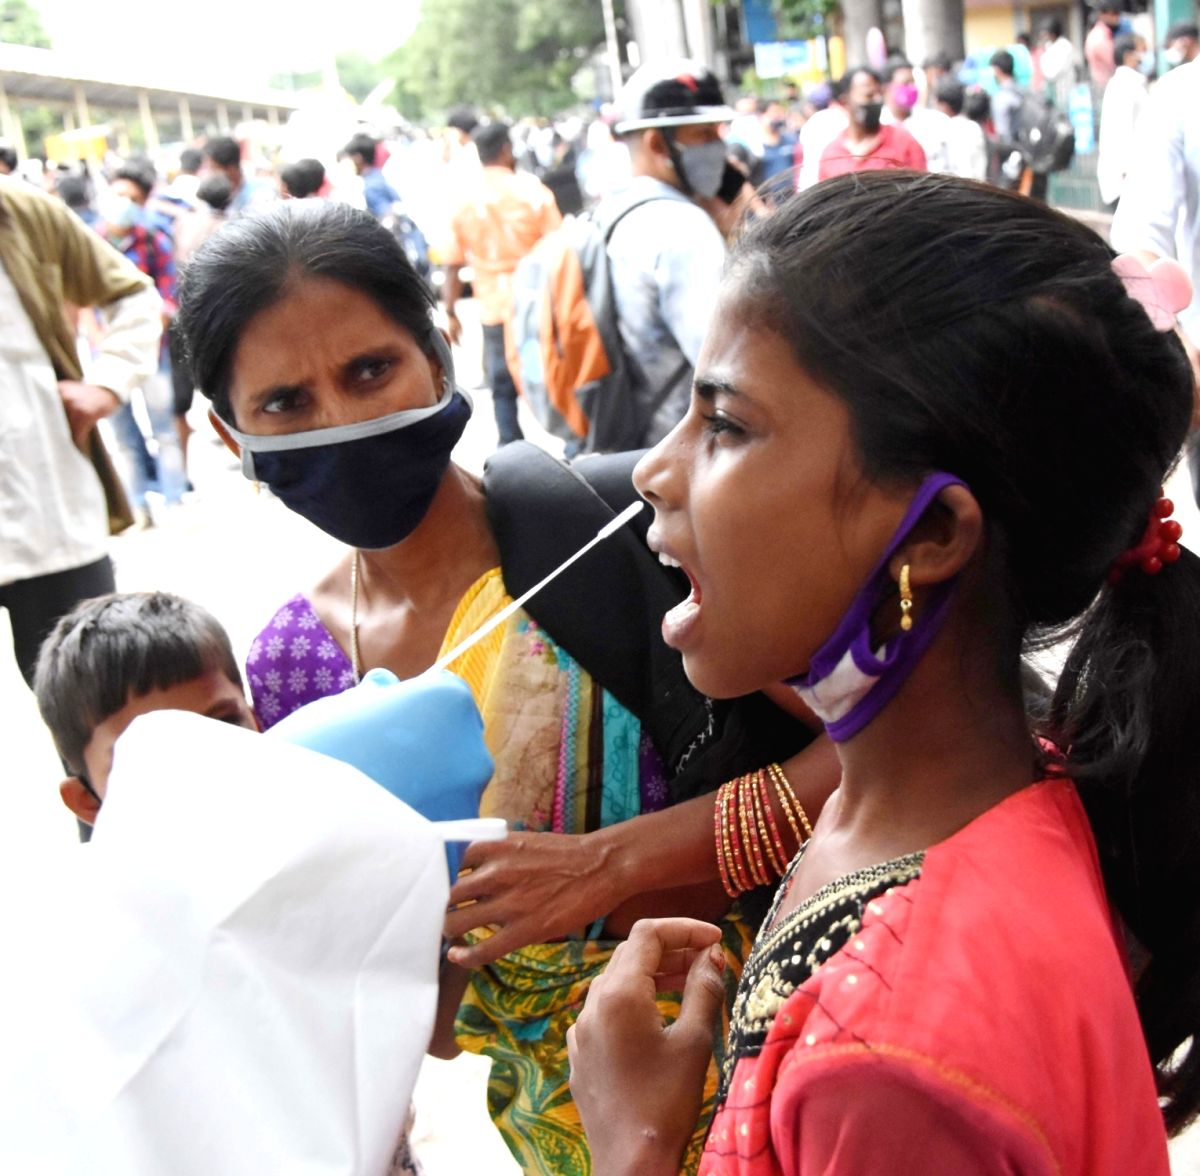 Bengaluru: Health worker collect swab samples for COVID-19 tests at City Railway station, Majestic, amid surge in coronavirus cases, in Bengaluru on Saturday, June 26, 2021